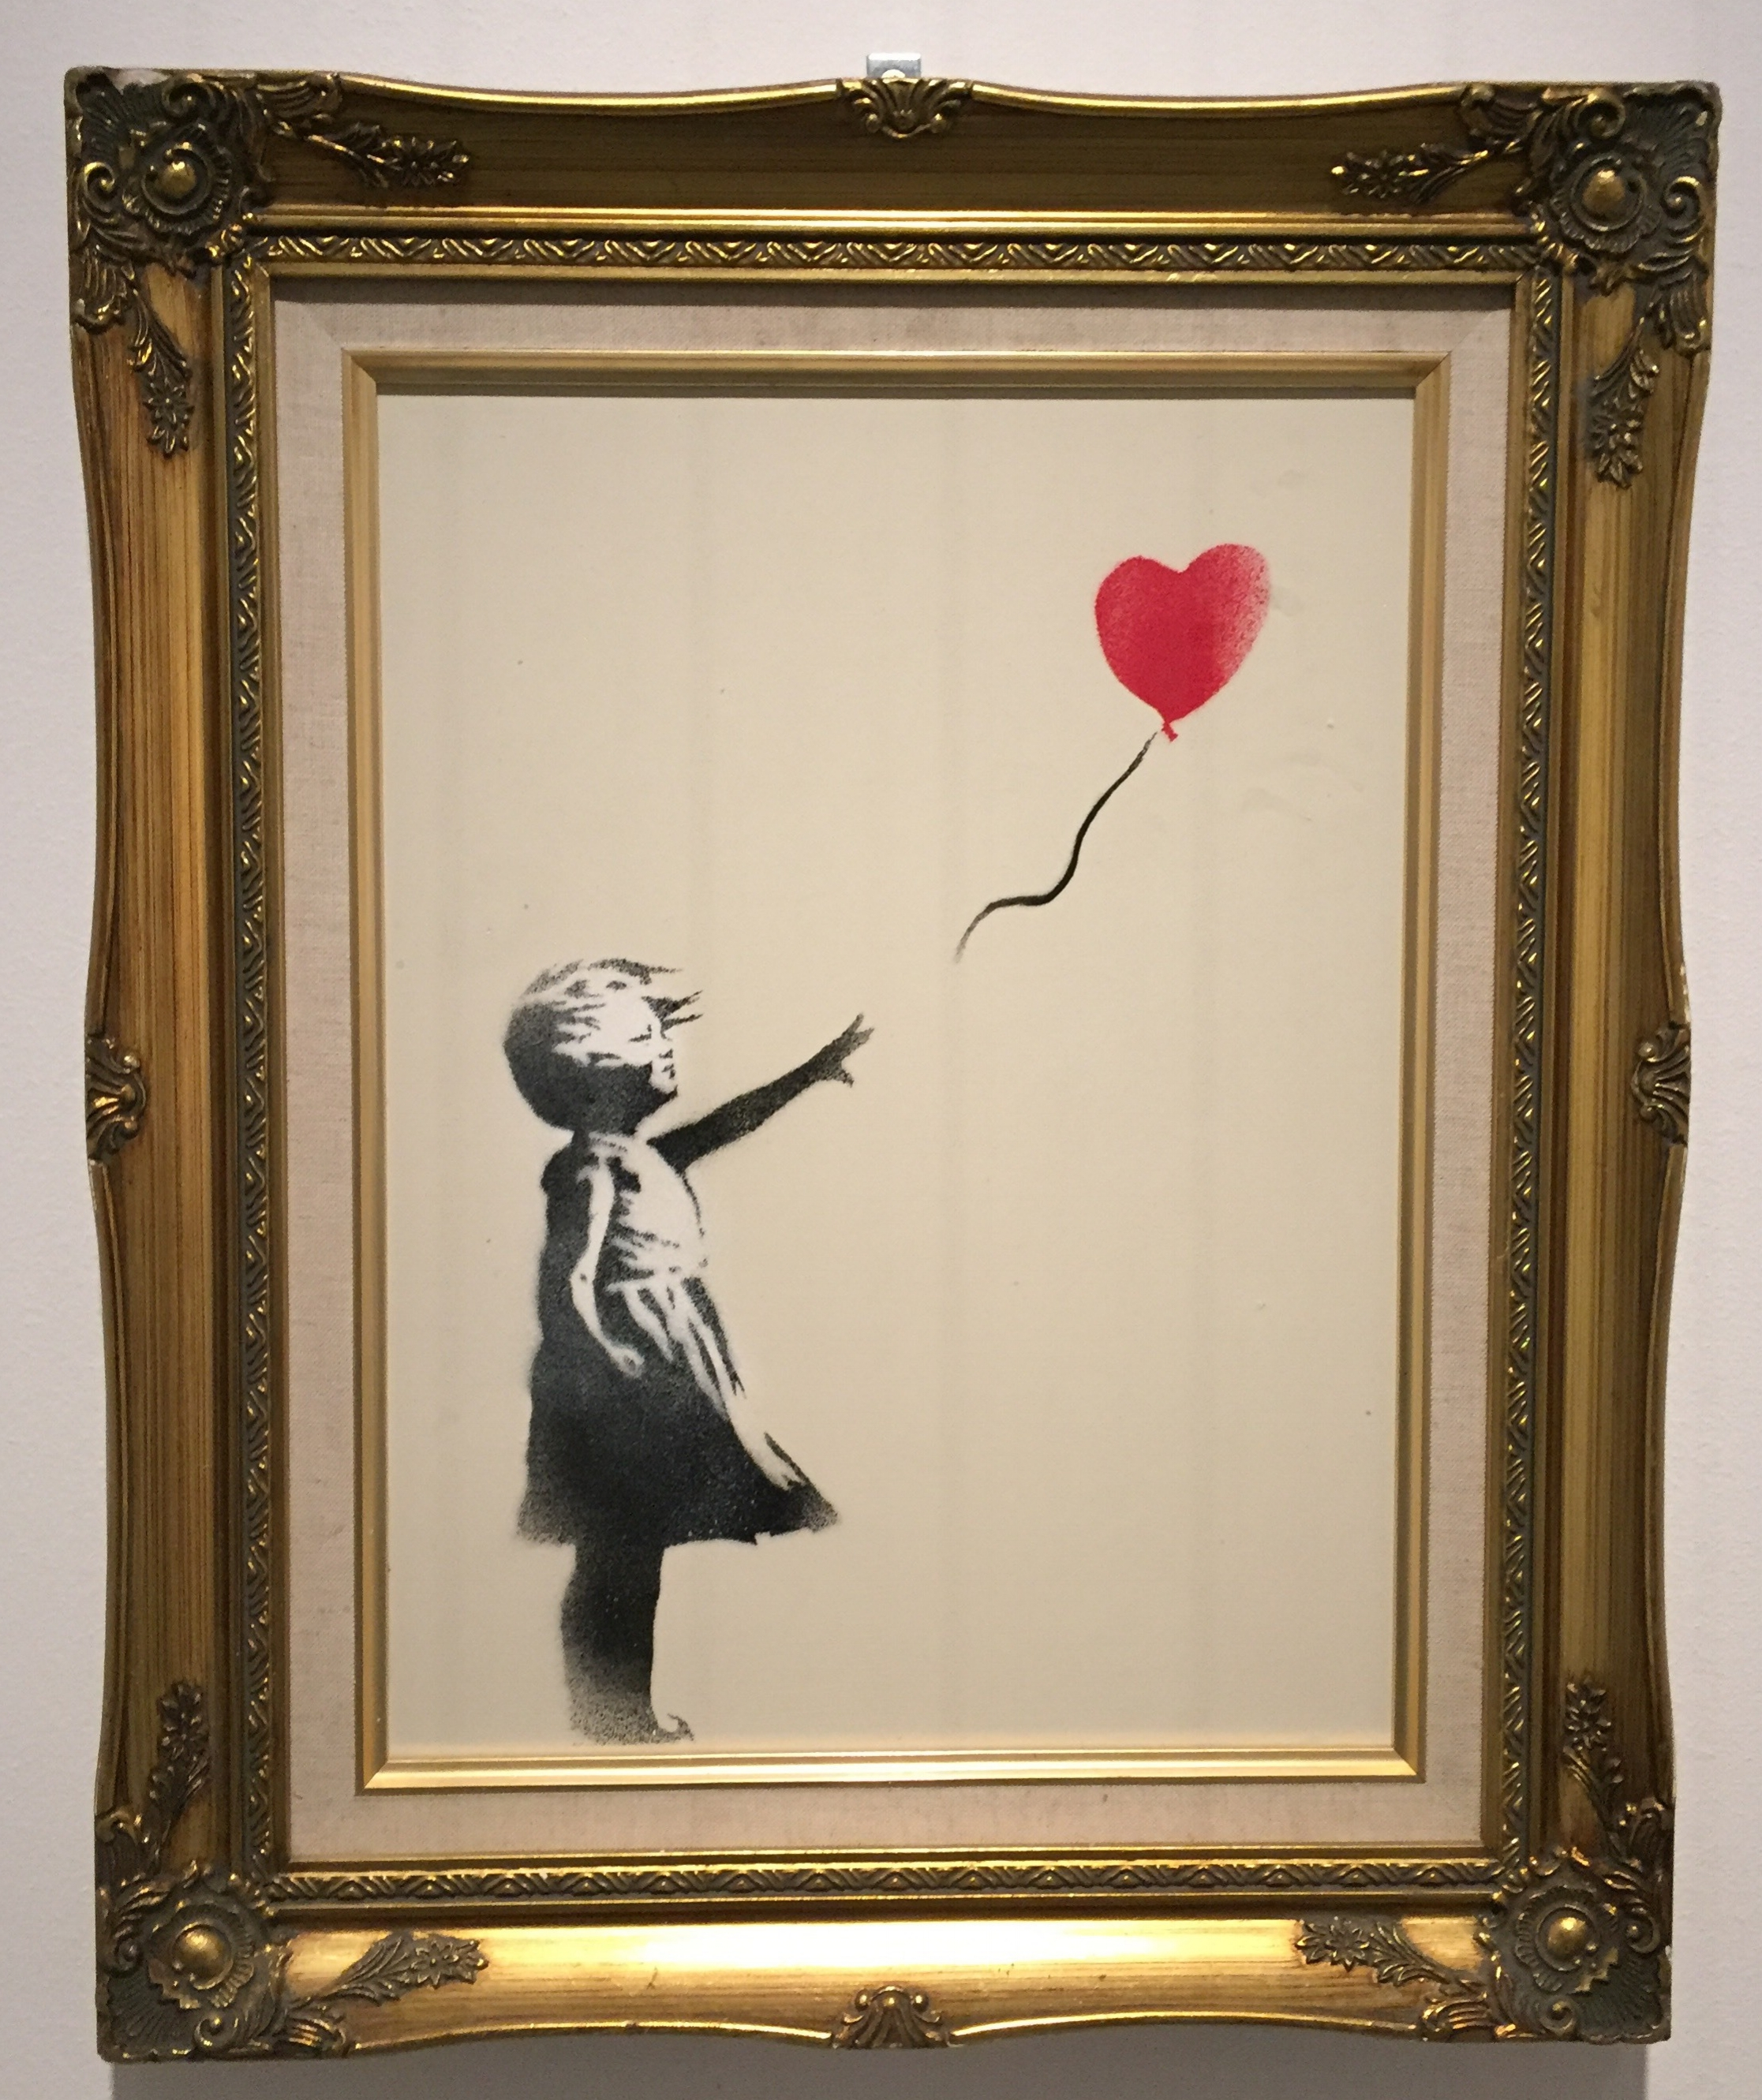 'Girl with Balloon', photo taken by Reem Gallery at the Banksy 'Guerra, Capitalismo & Liberta' exhibition in Rome 2016.